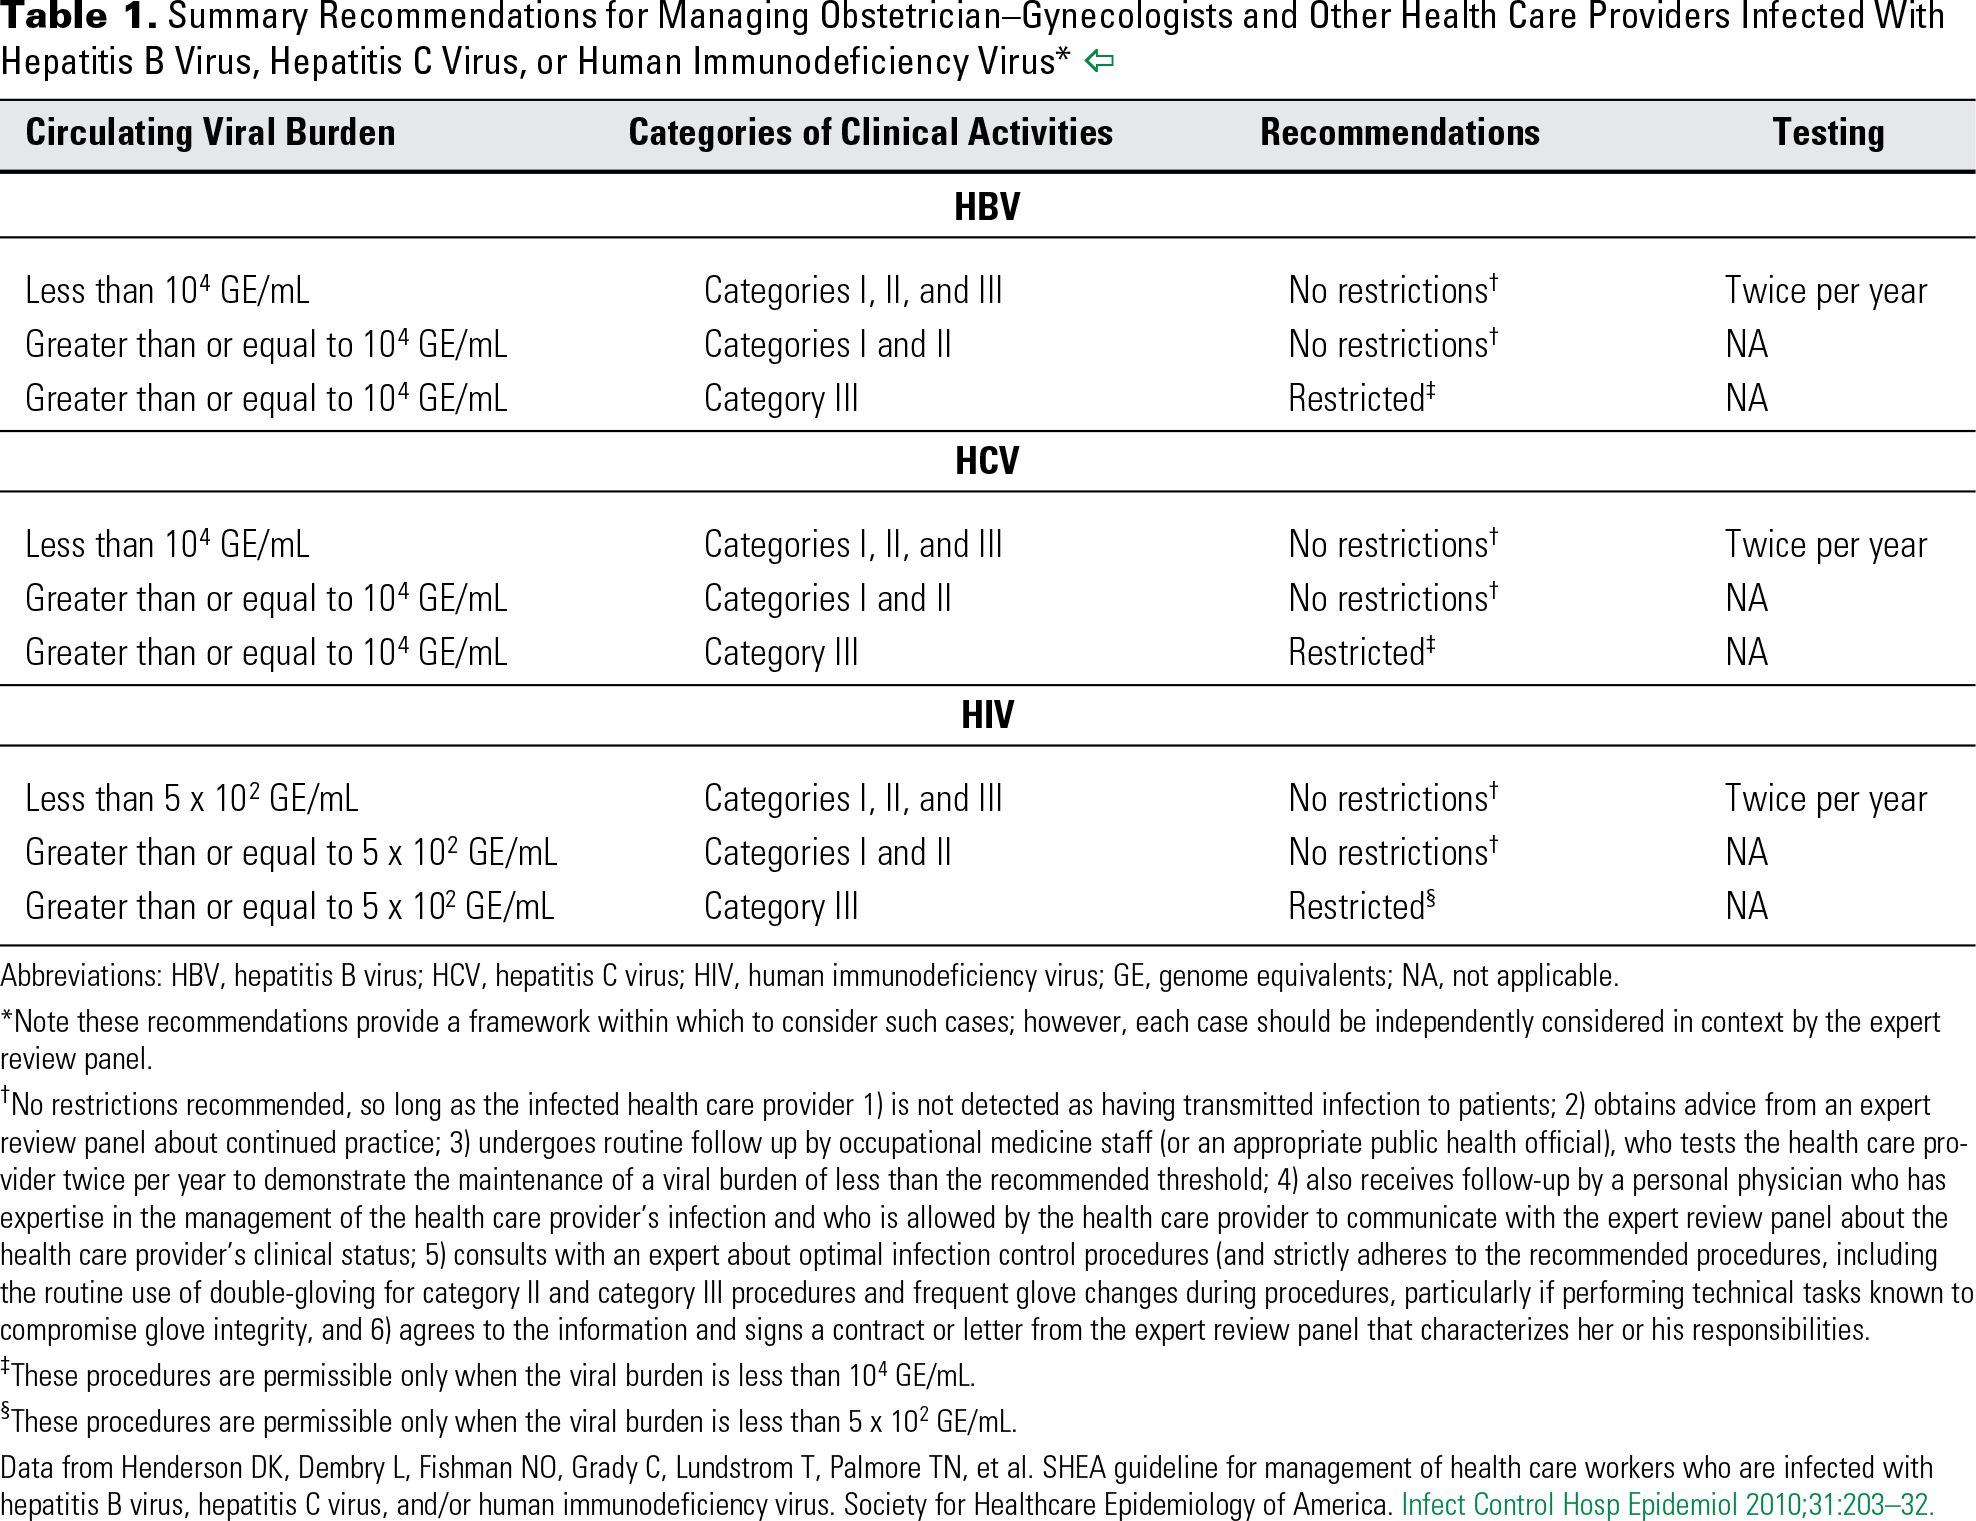 Table 1. Summary Recommendations for Managing Obstetrician–Gynecologists and Other Health Care Providers Infected With Hepatitis B Virus, Hepatitis C Virus, or Human Immunodeficiency Virus*